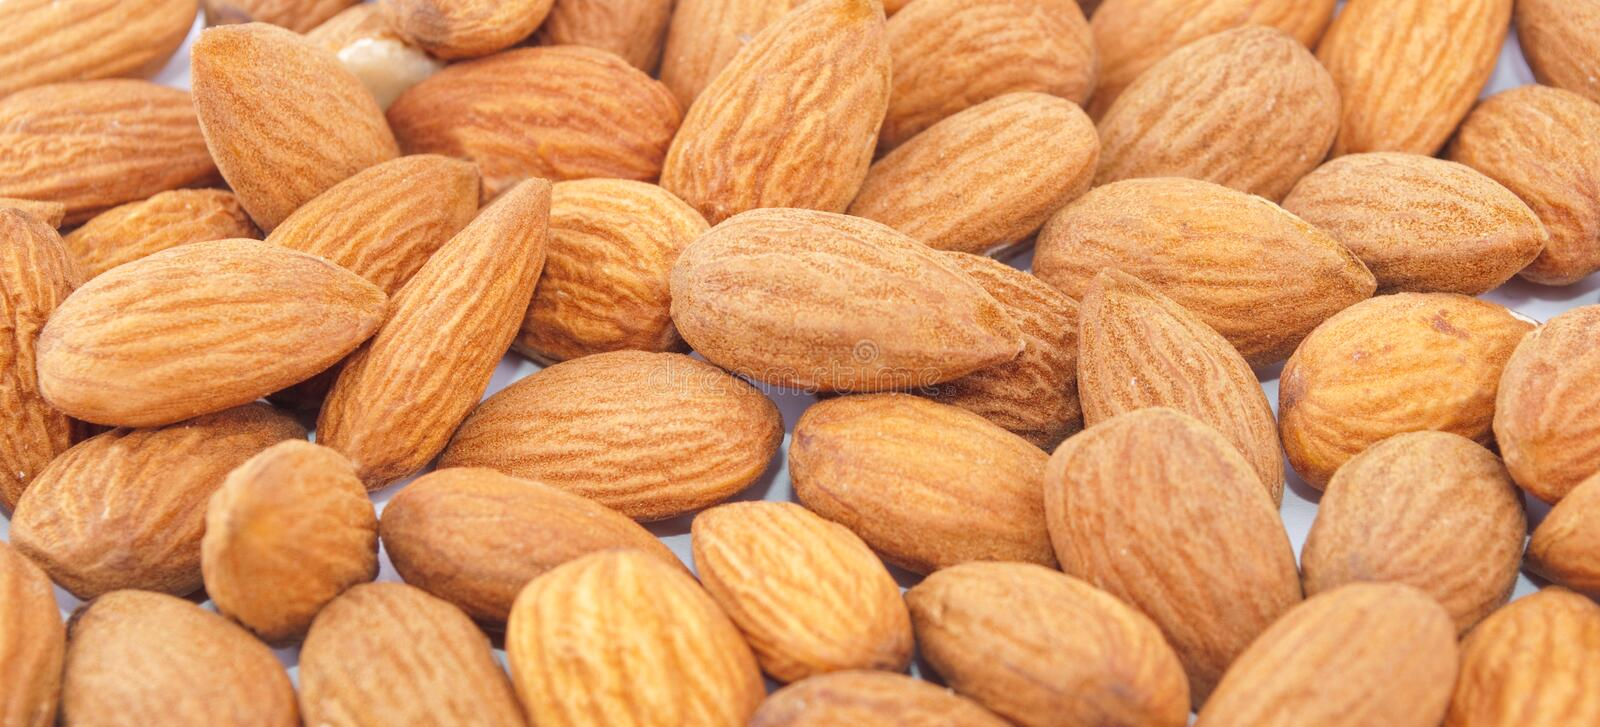 Download Almonds background stock image. Image of brown, ingredient - 19139993